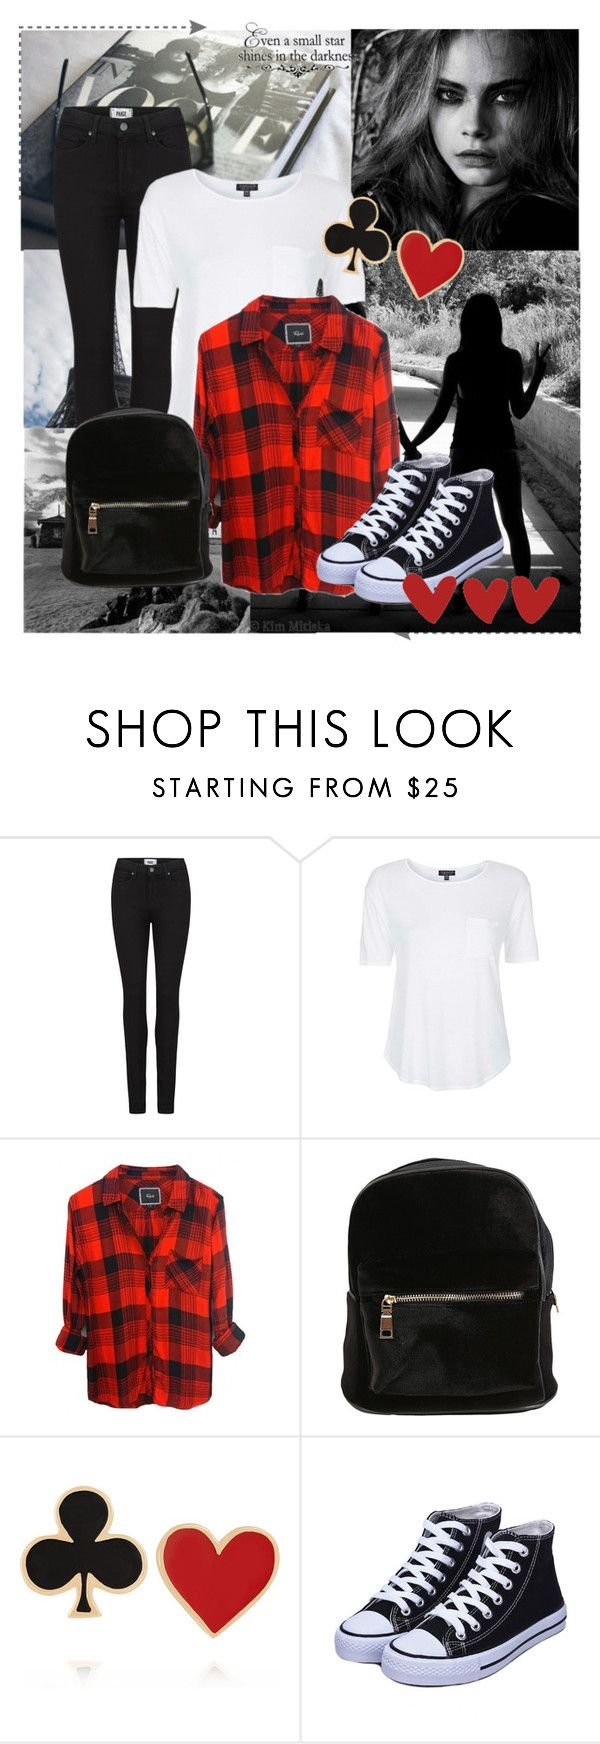 """""""Even a Small STAR SHINES in the darkness"""" by dhruvi5002 ❤ liked on Polyvore featuring Paige Denim, Topshop and Alison Lou"""